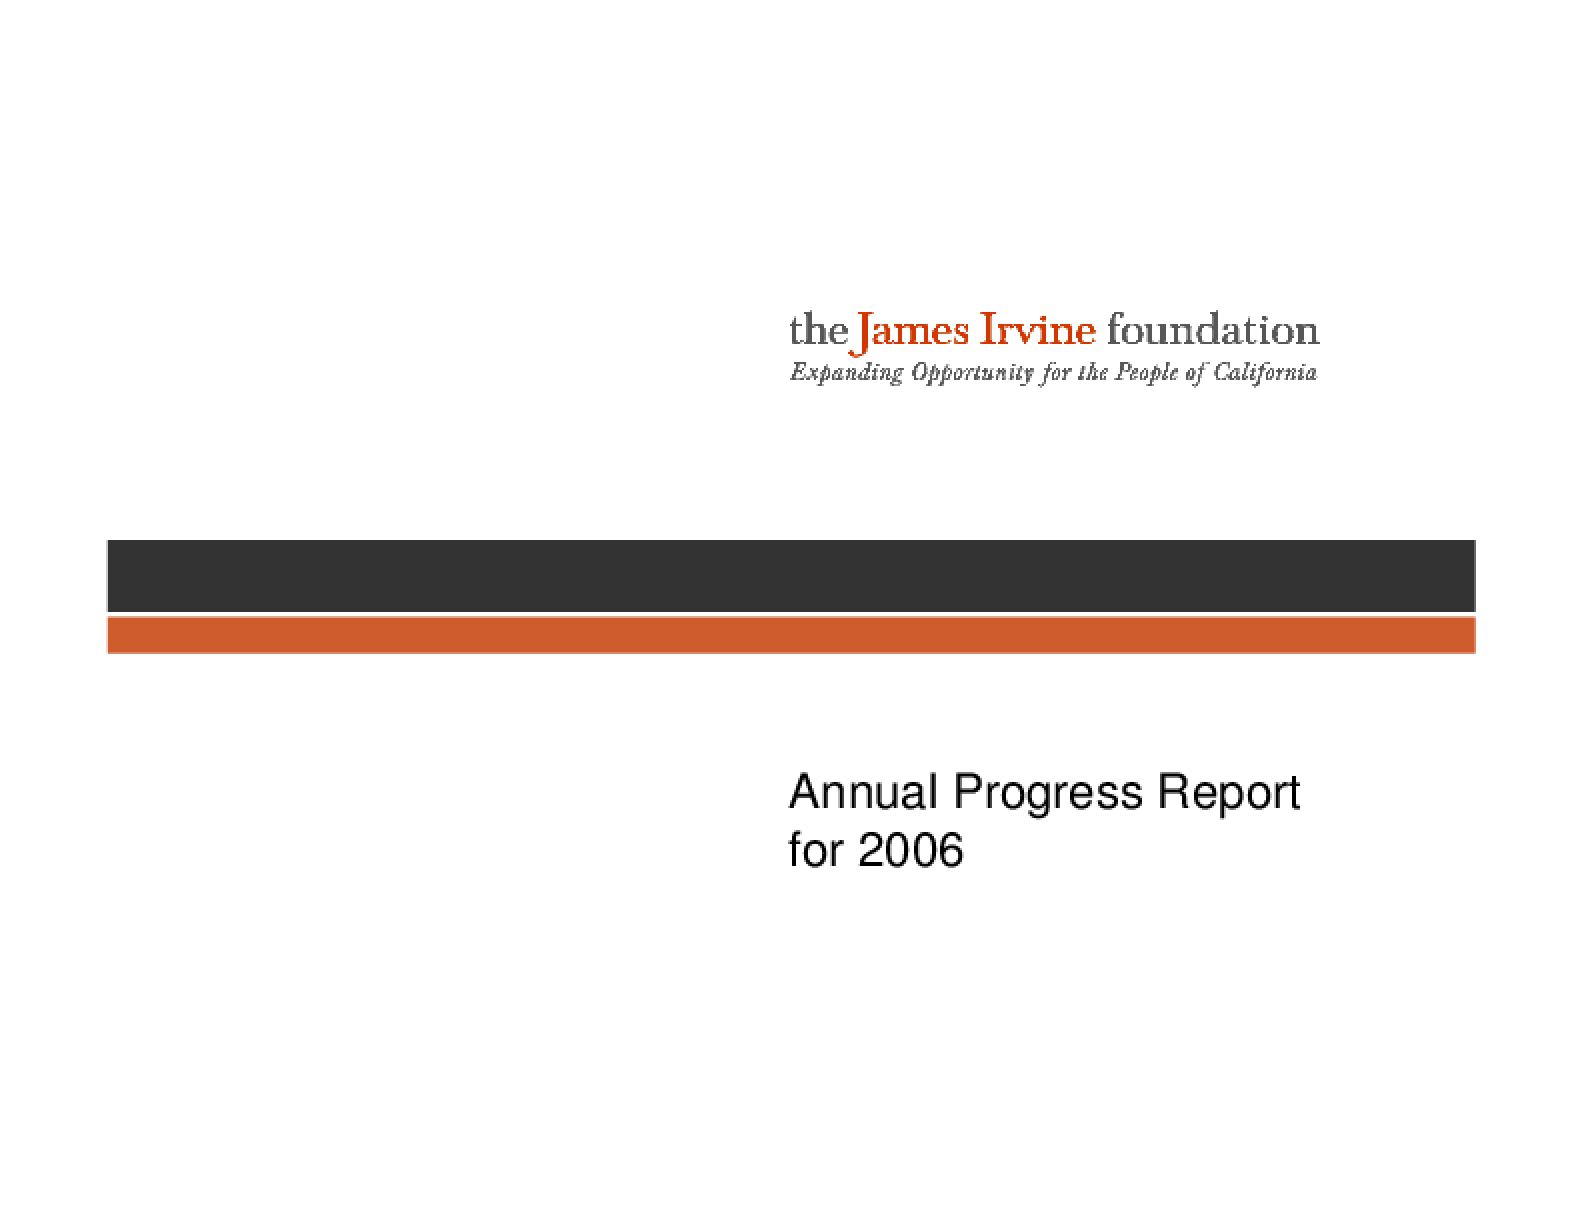 Annual Progress Report for 2006